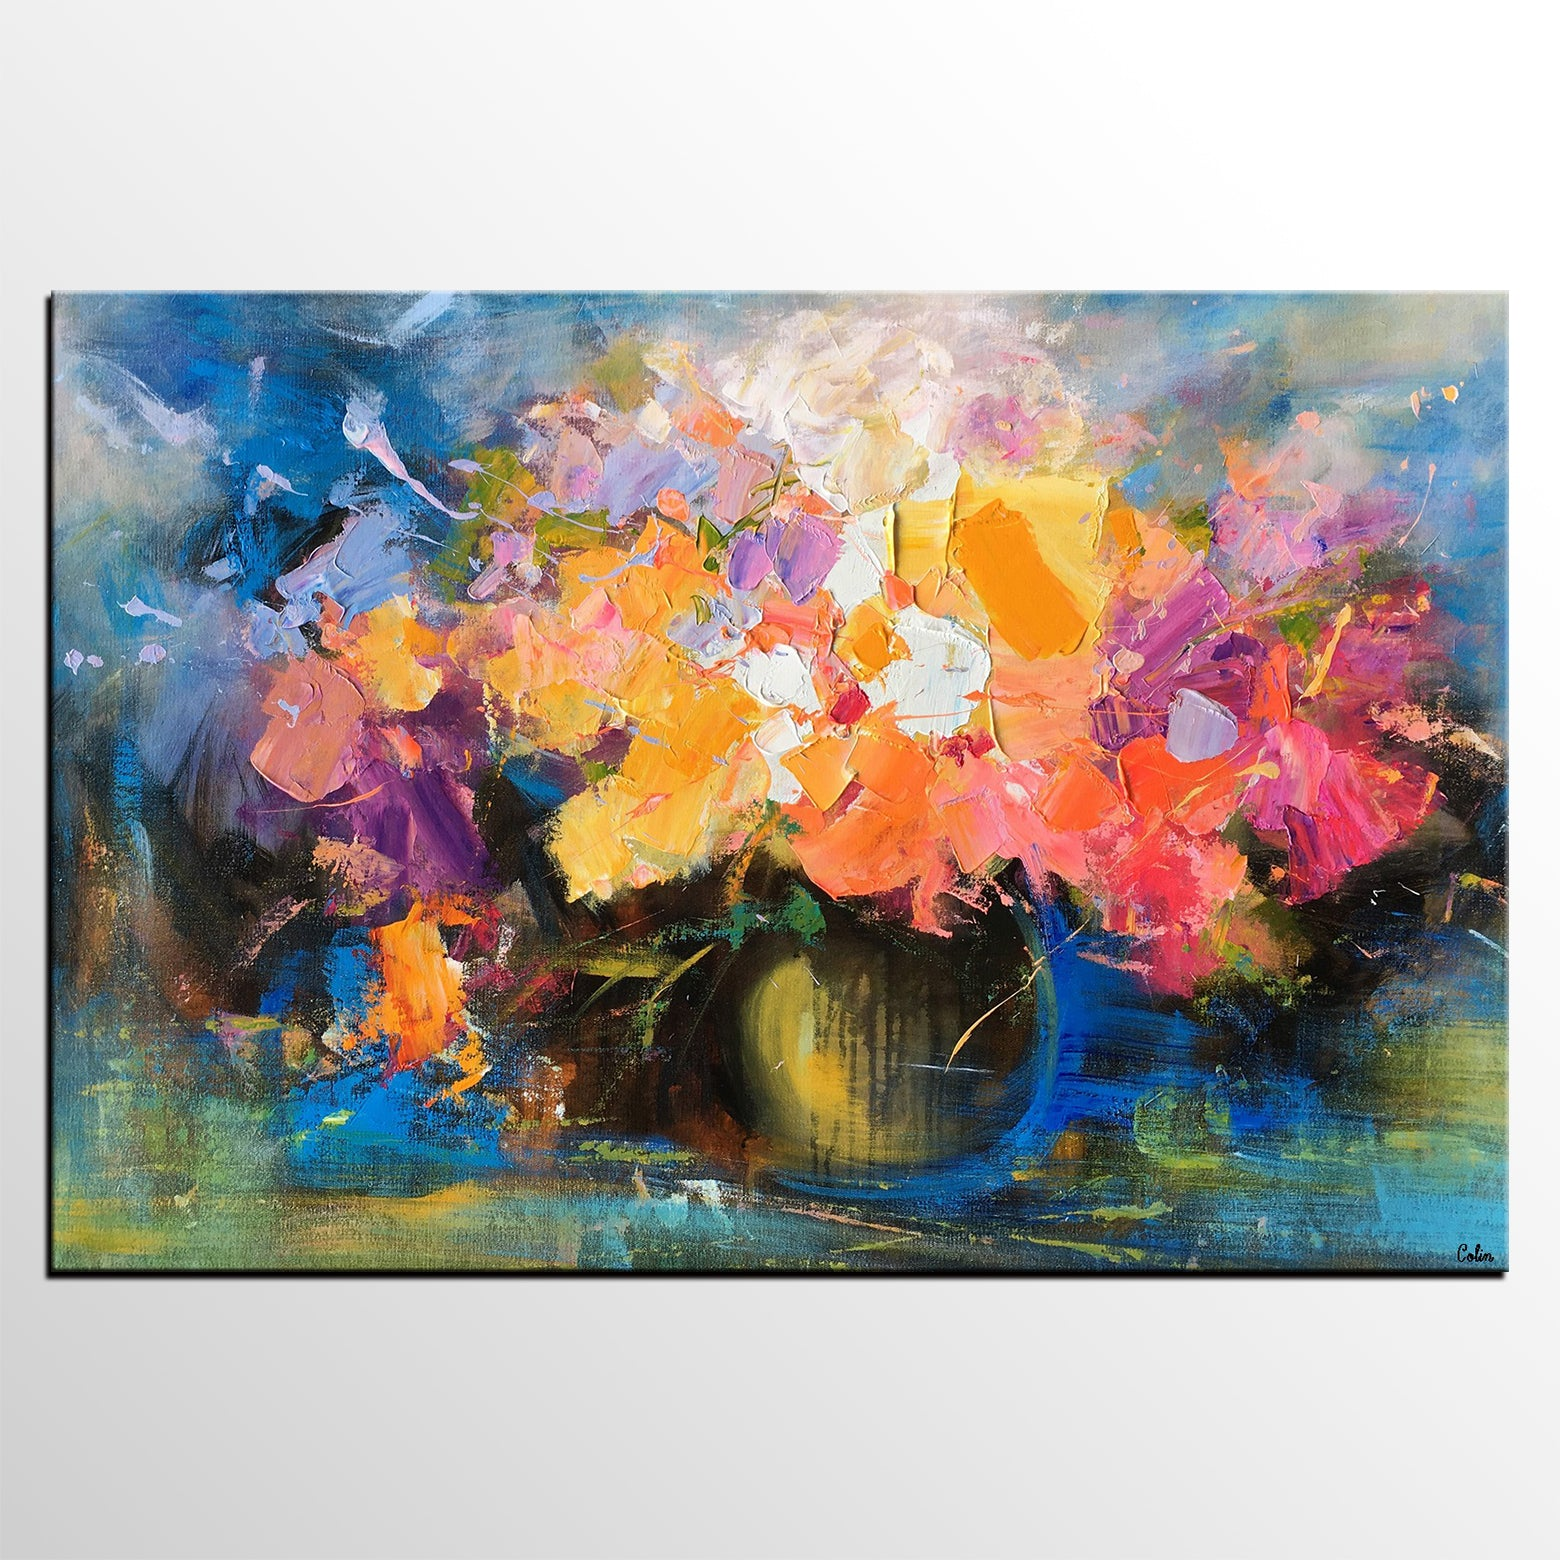 Flower Canvas Painting, Original Wall Art, Still Life Painting, Large Canvas Artwork, Painting for Sale - artworkcanvas